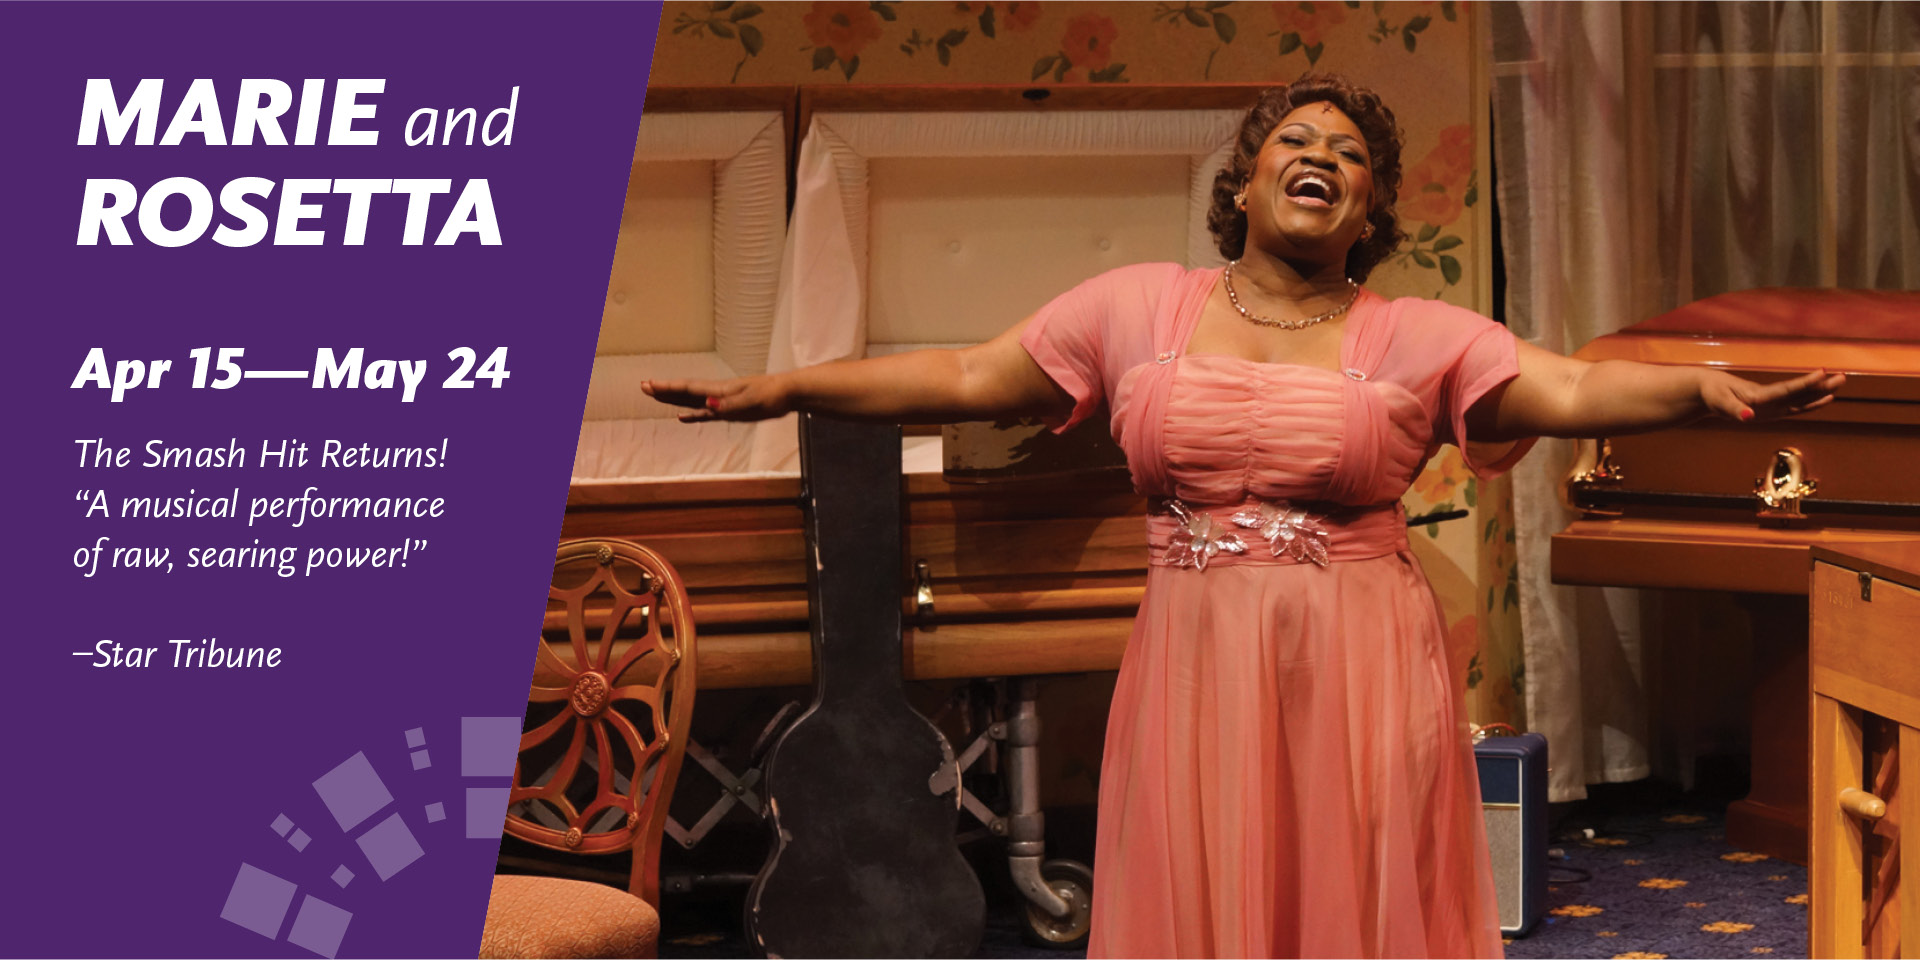 Announcing Marie and Rosetta - Woman who is African American singing near two empty caskets, wearing rose pink dress